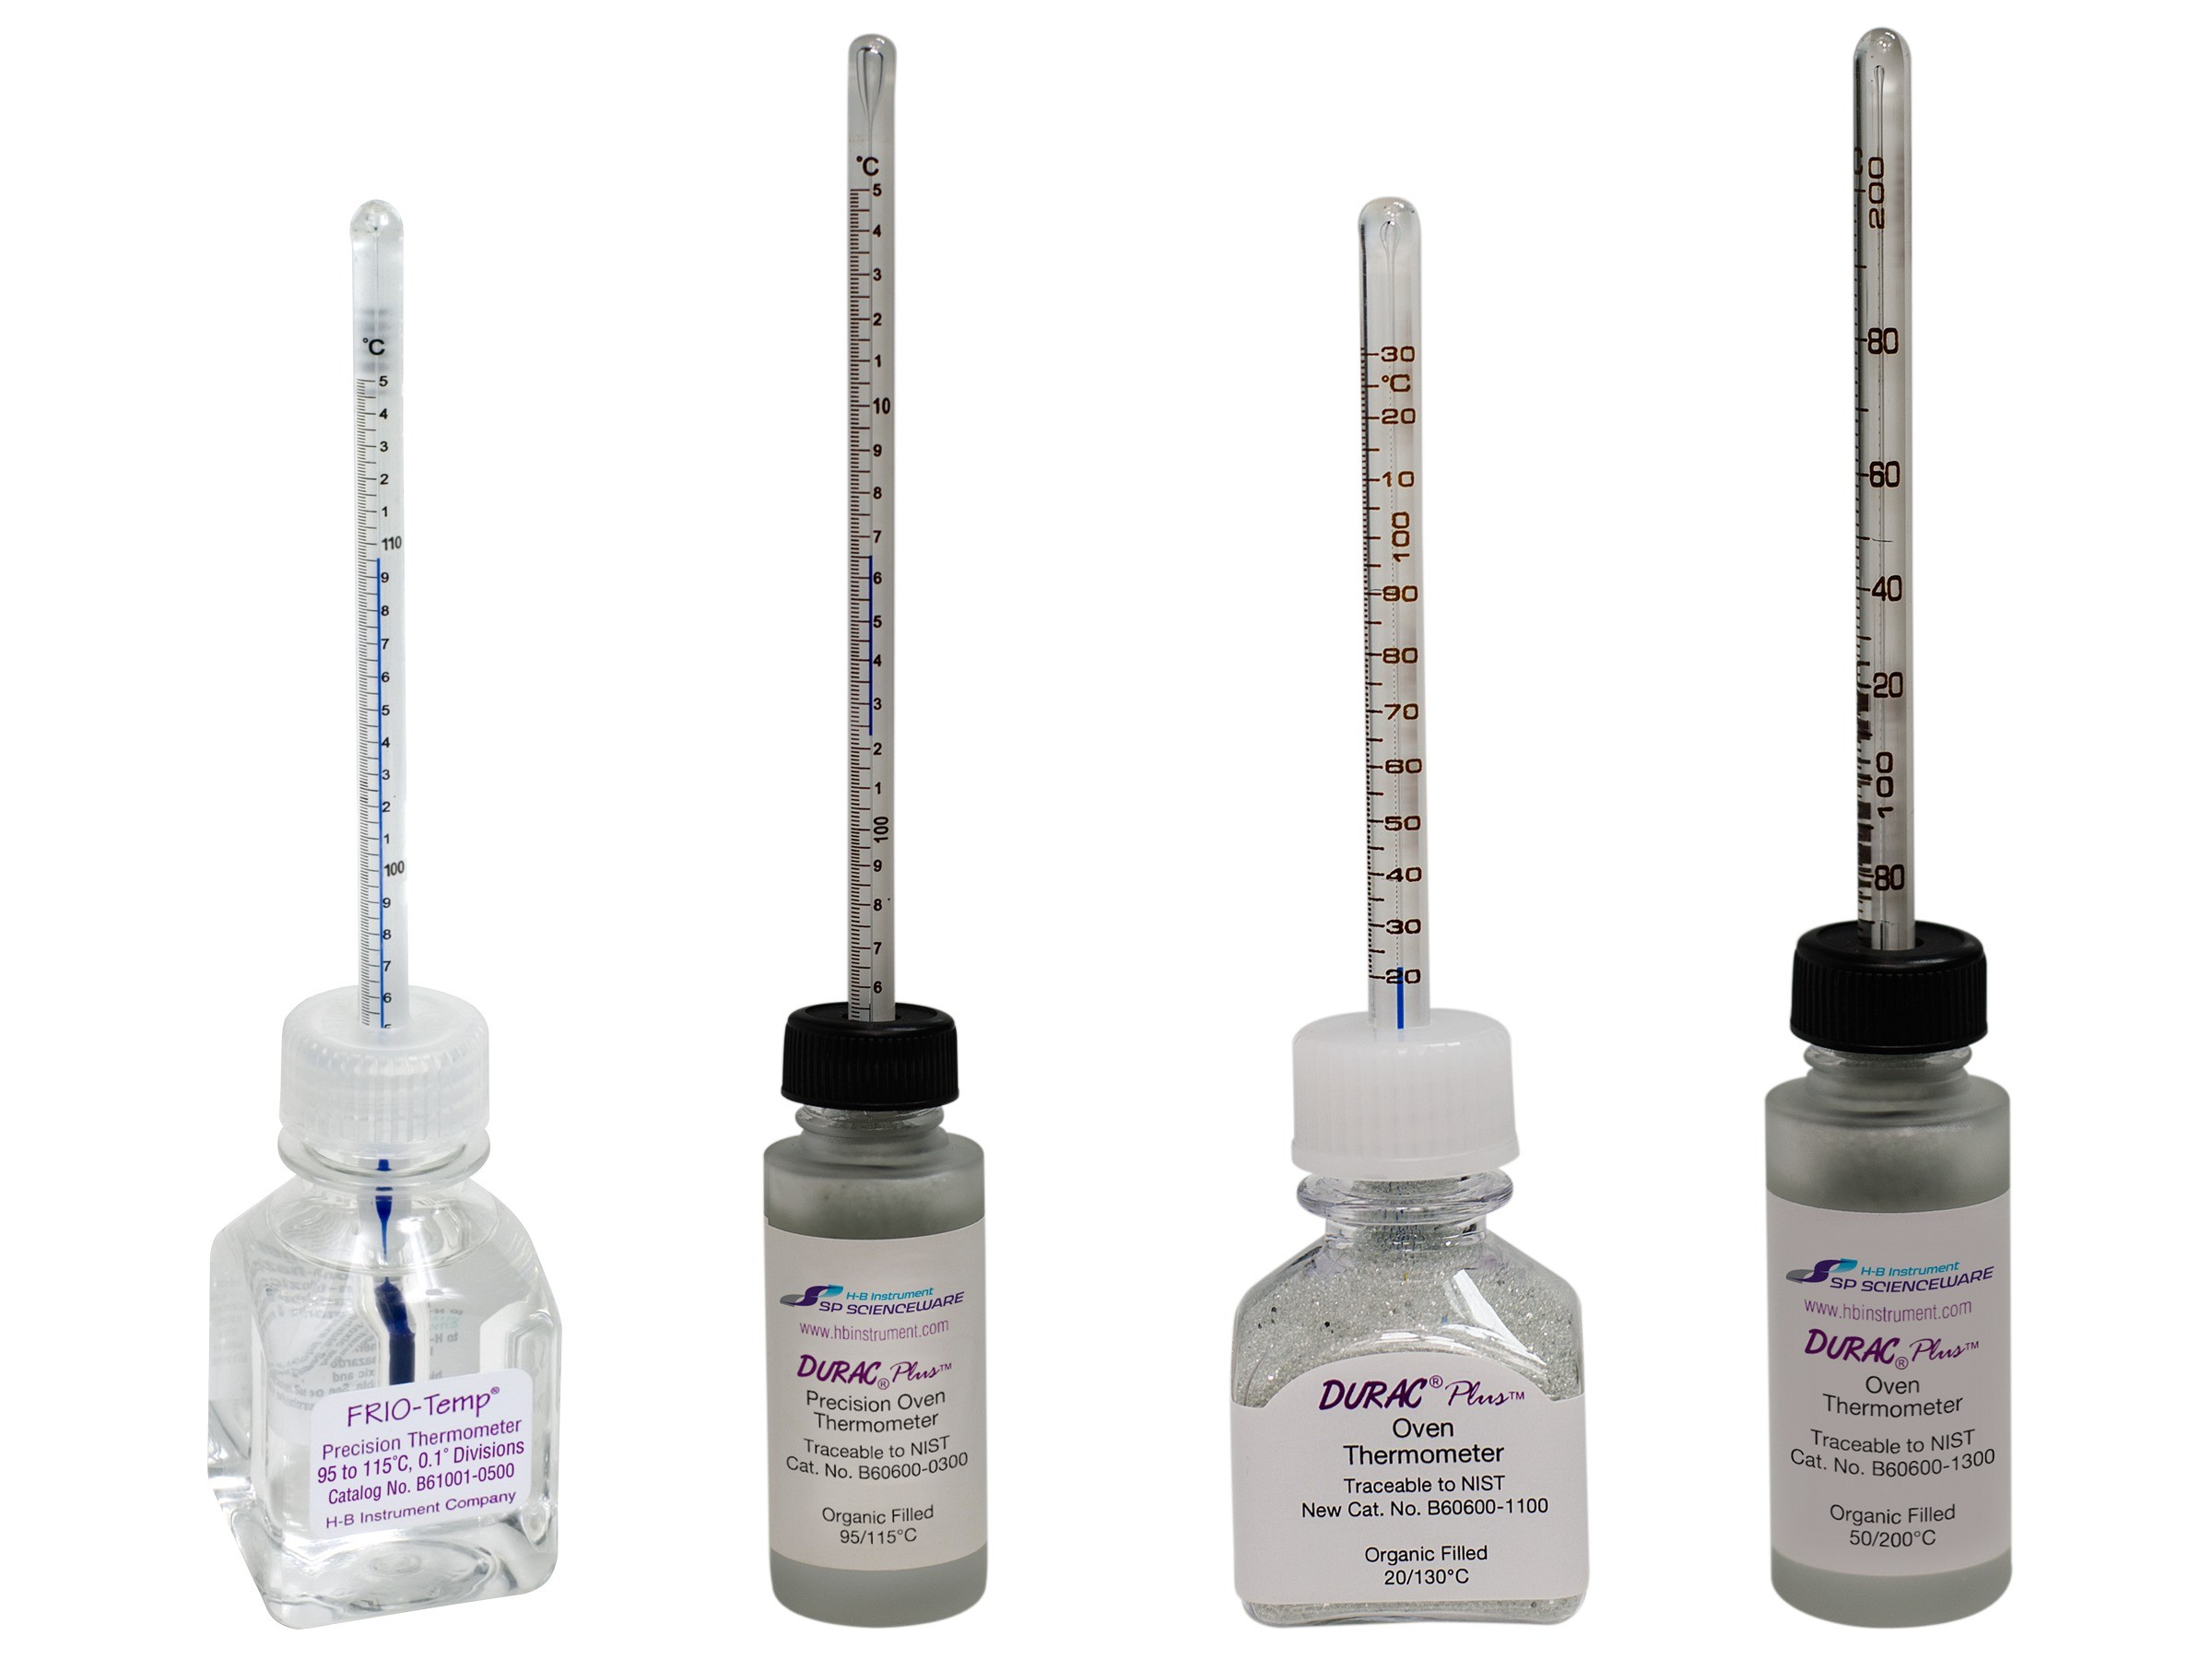 H-B FRIO-Temp and DURAC Plus Incubator Verification Thermometers; Traceable to NIST